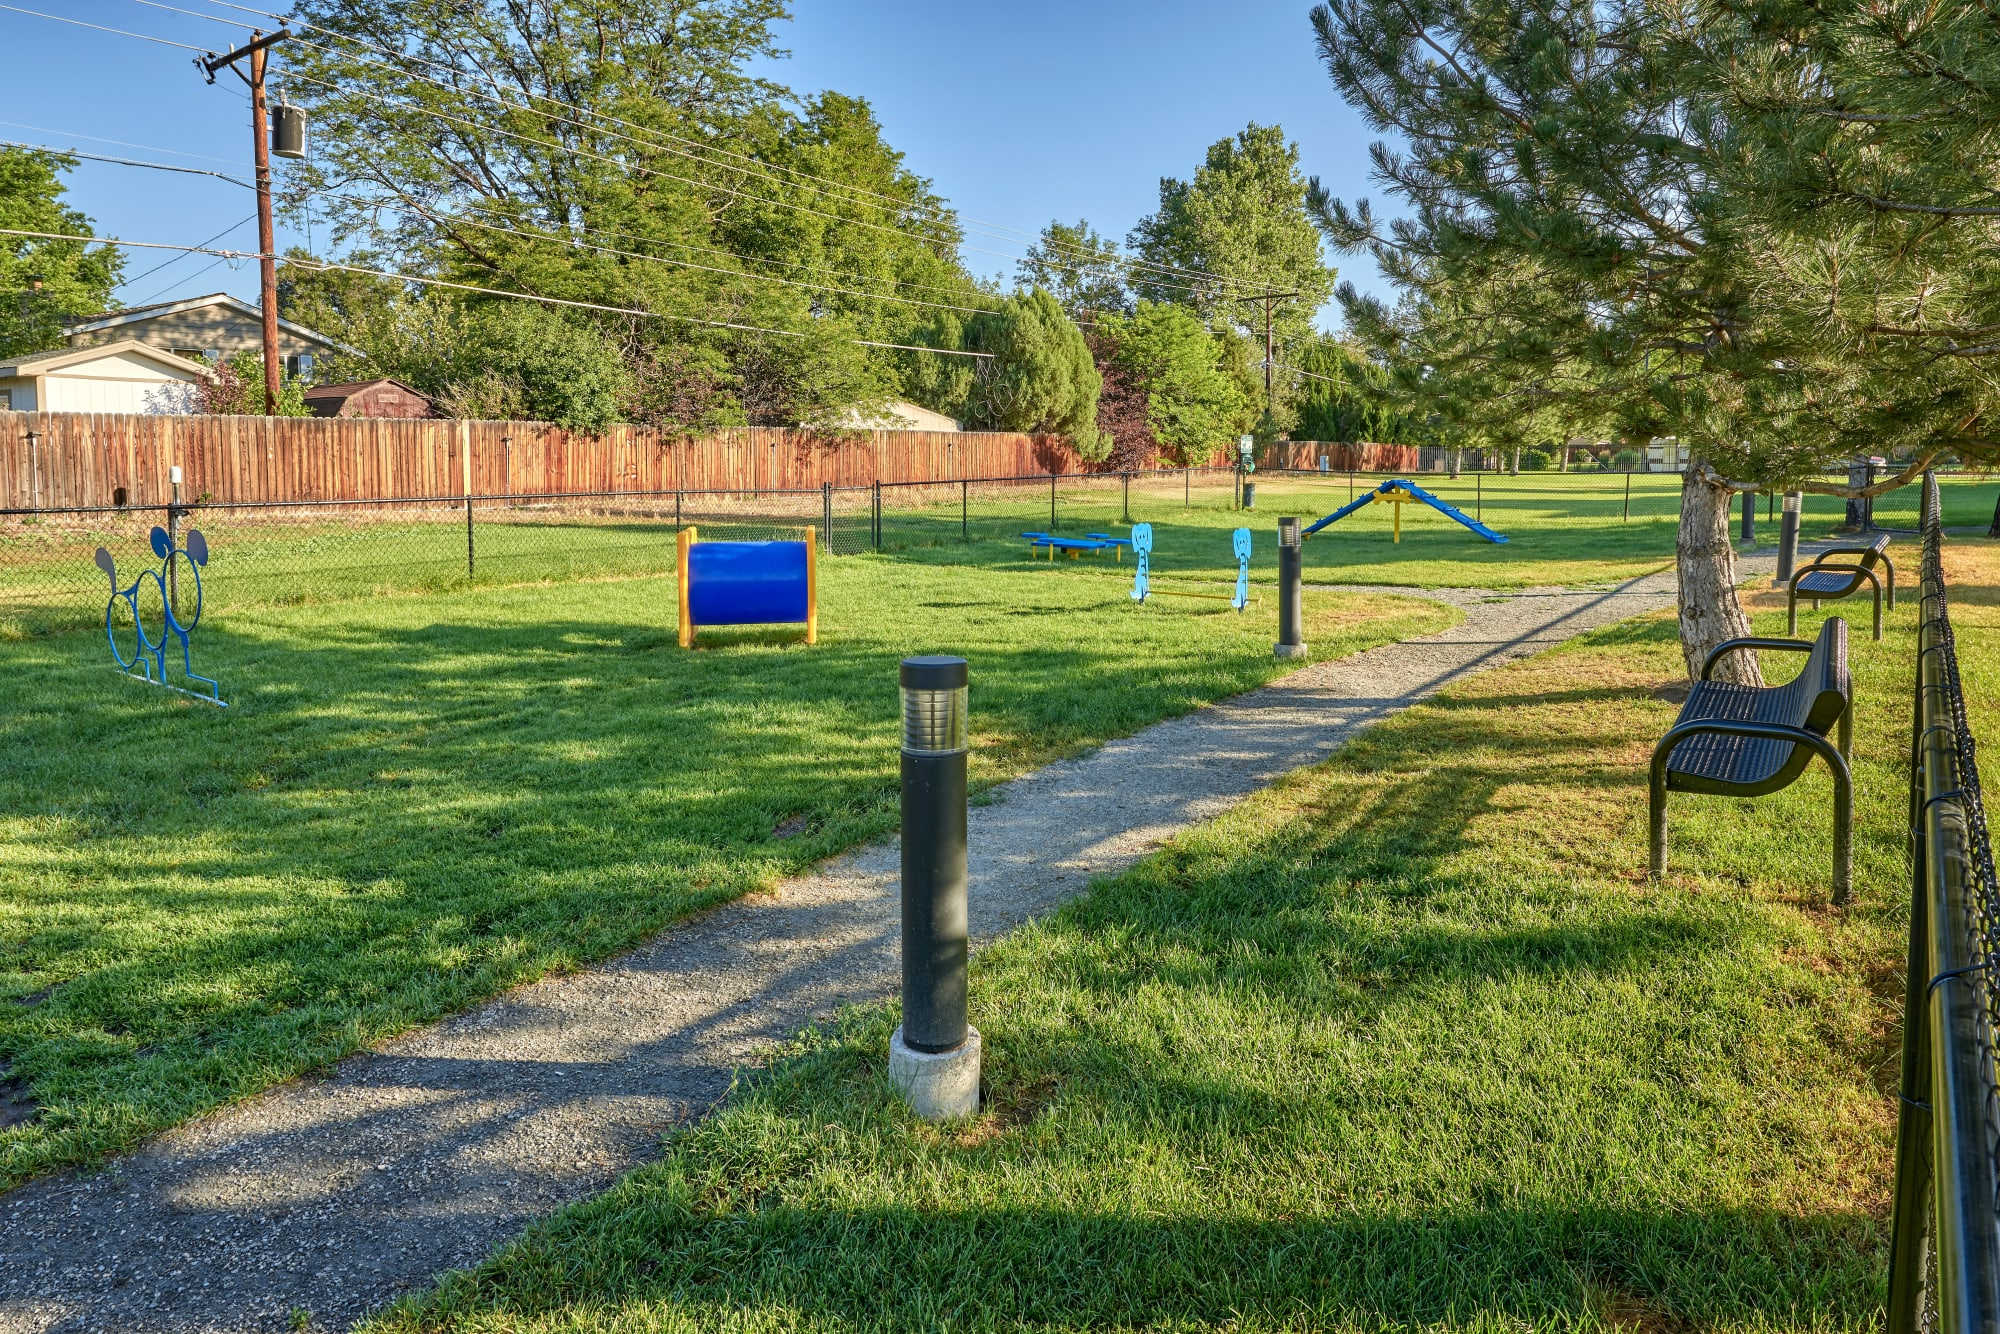 The off-leash dog park at Bear Valley Park in Denver, Colorado